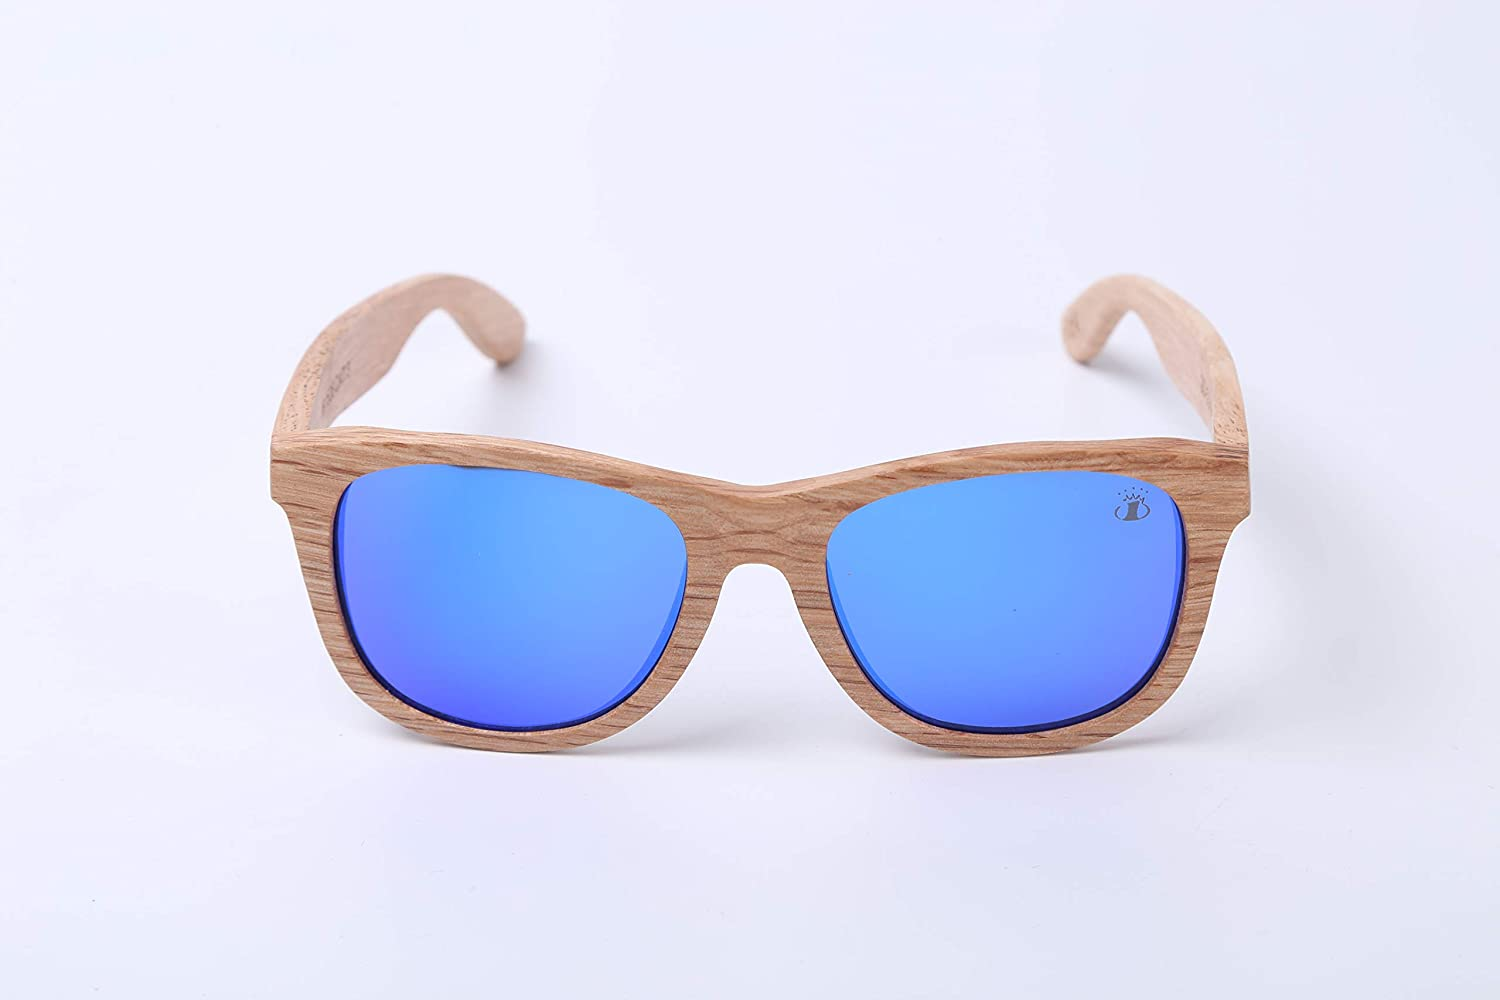 Wooden Polarized Sunglasses Handmade Sunglass Collection With Case,UV 400